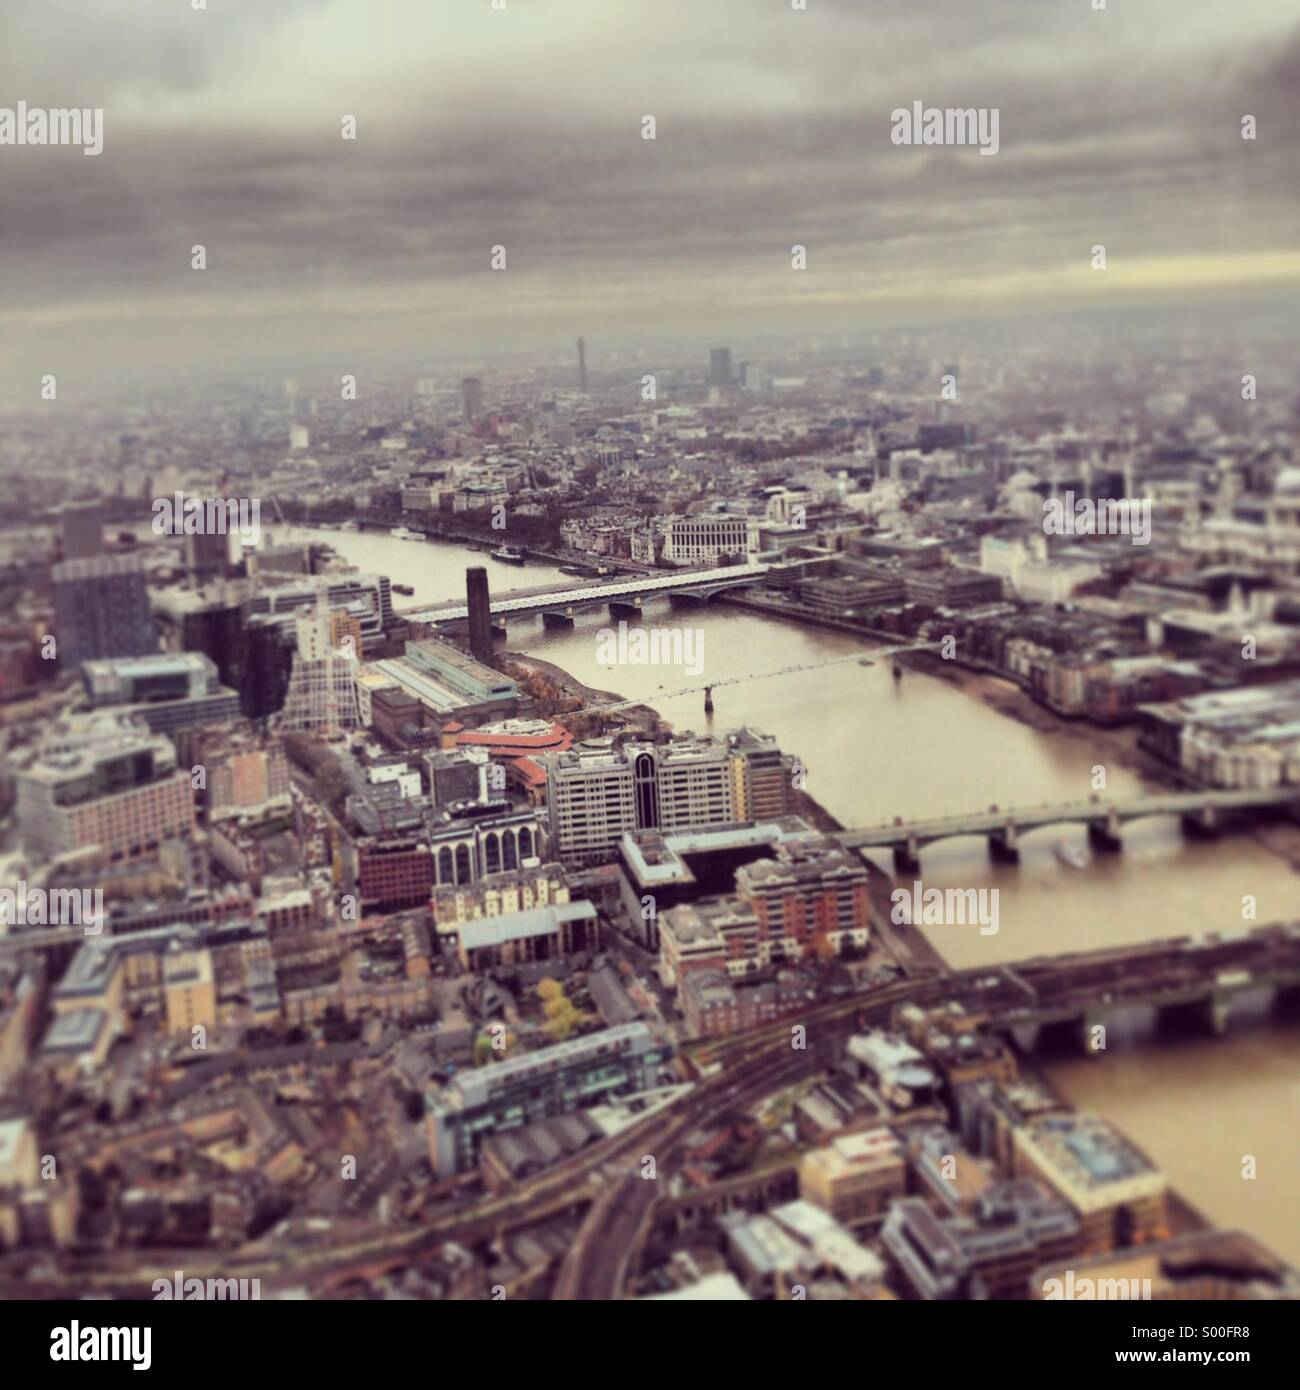 River Thames, aerial view, looking west - Stock Image